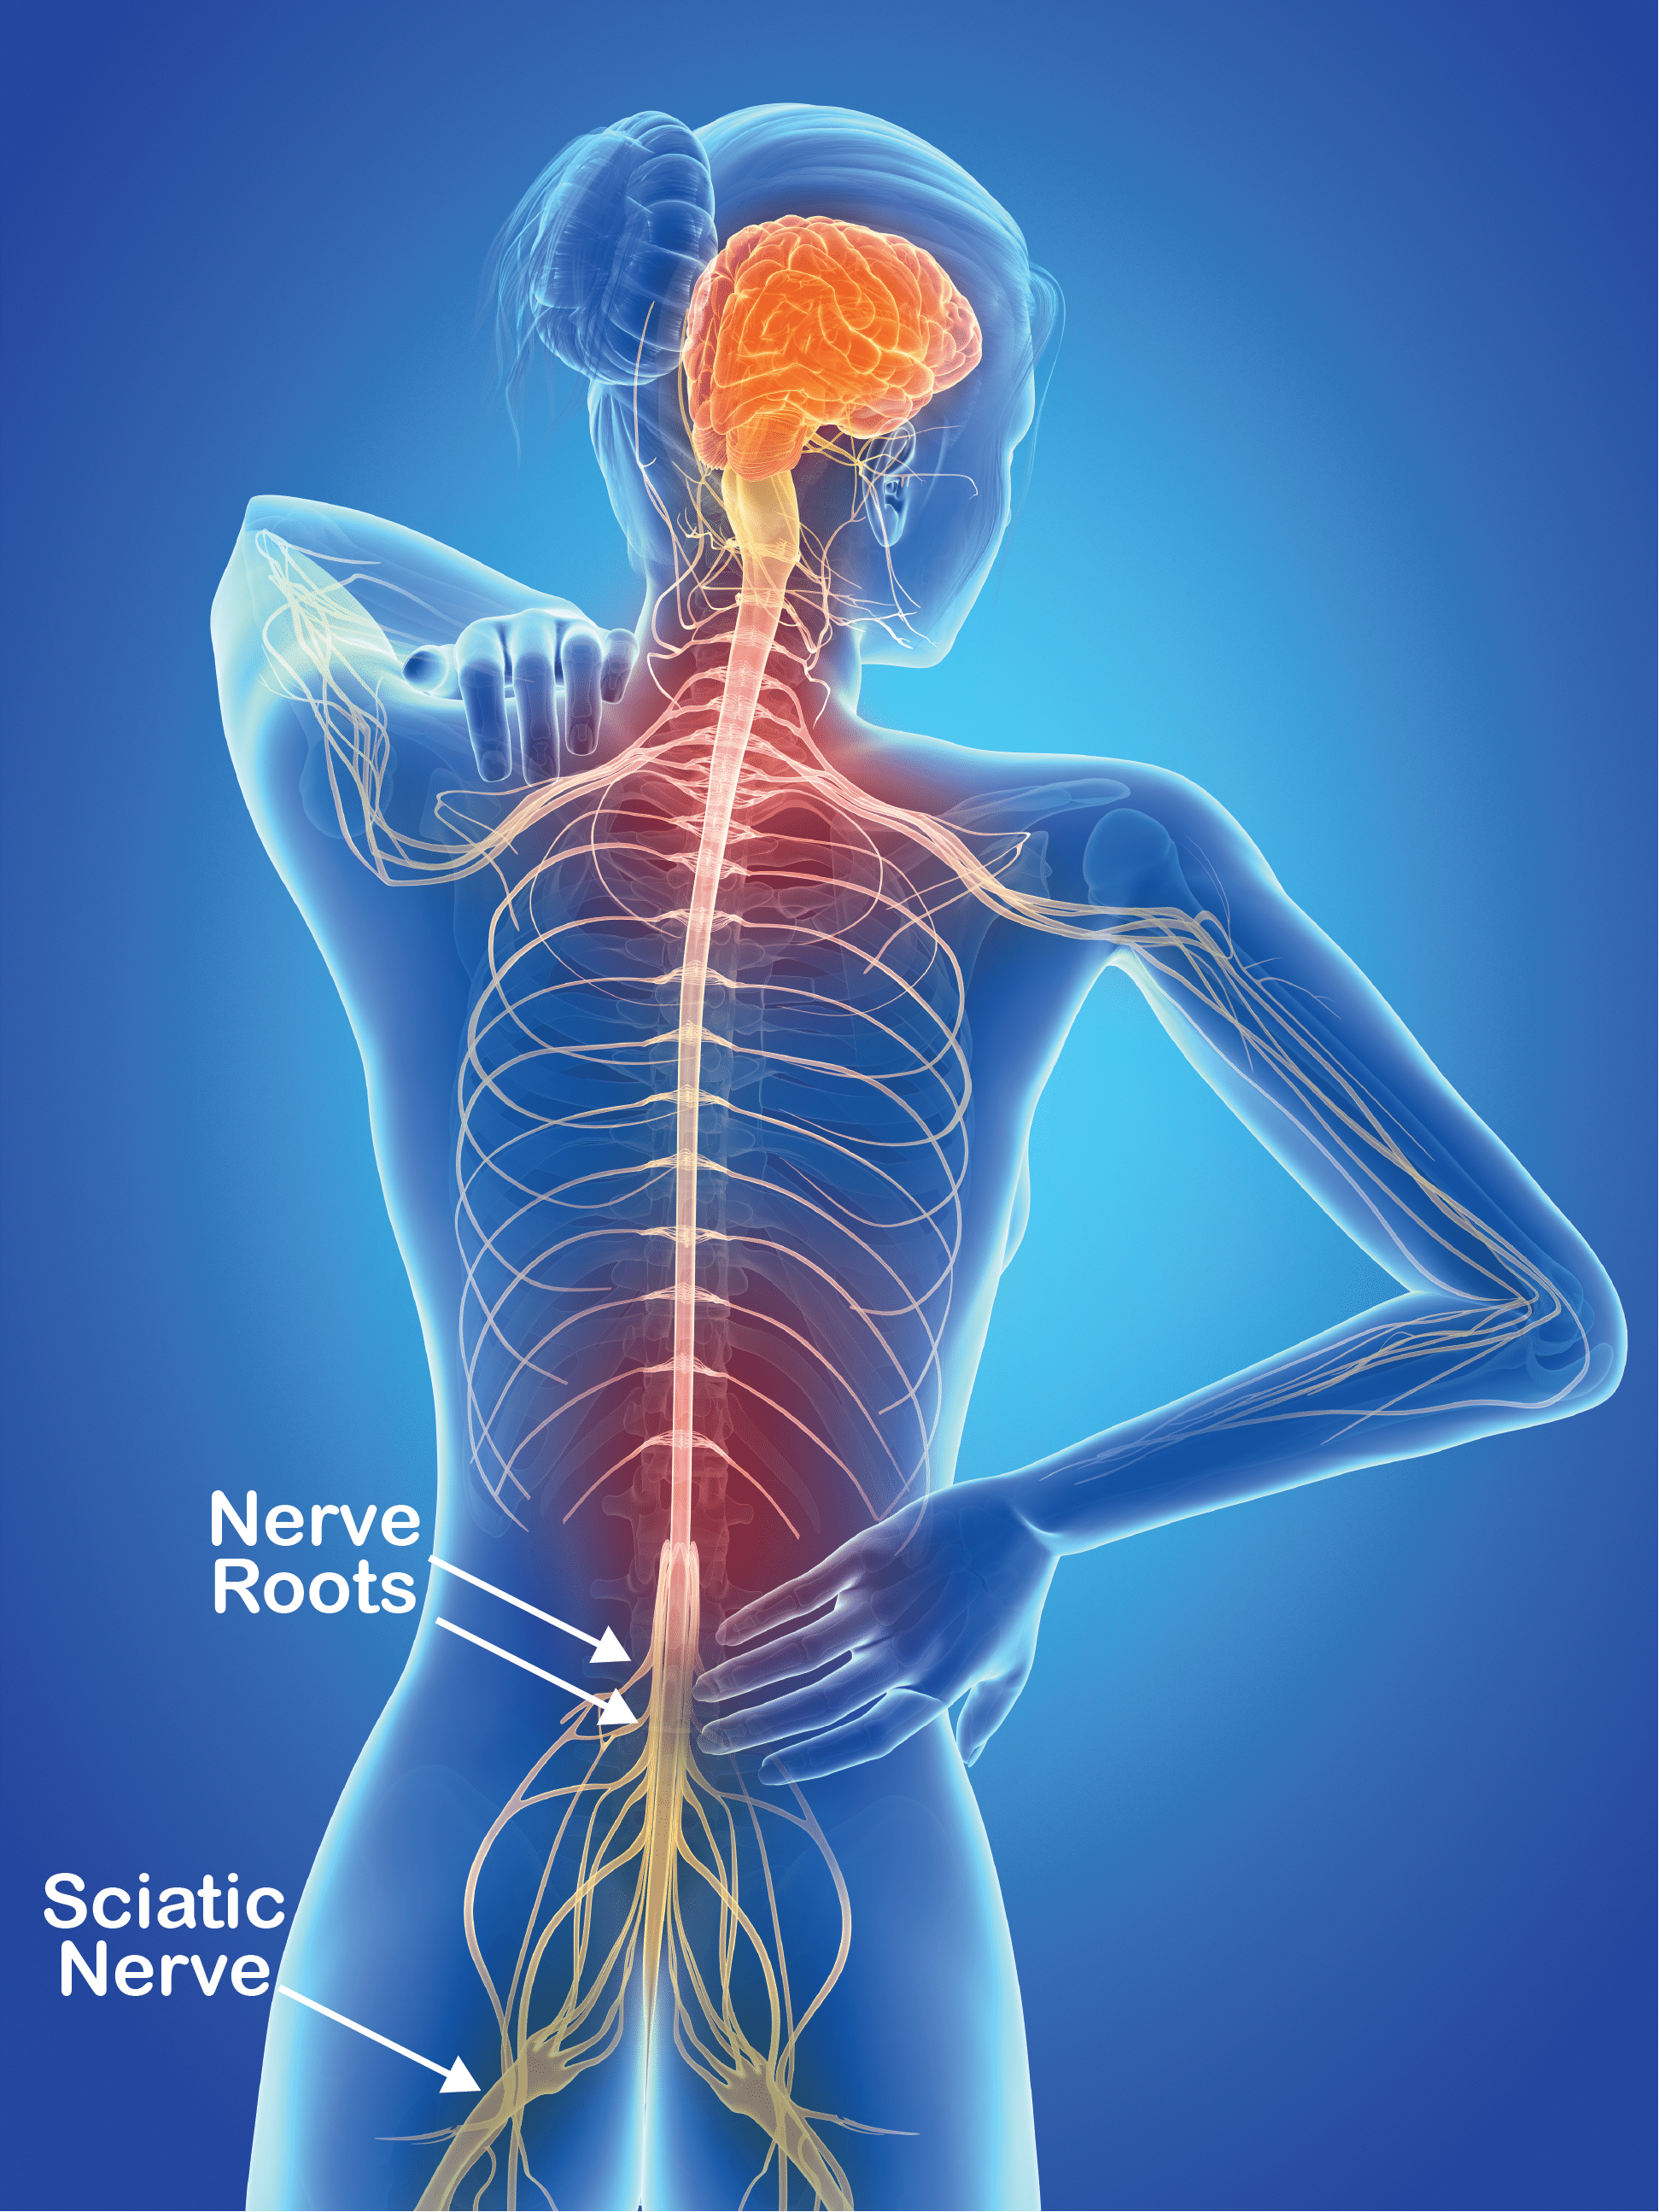 The Nervous System, demonstrating nerve roots emerging from the spine and the sciatic nerve that develop beyond the spine